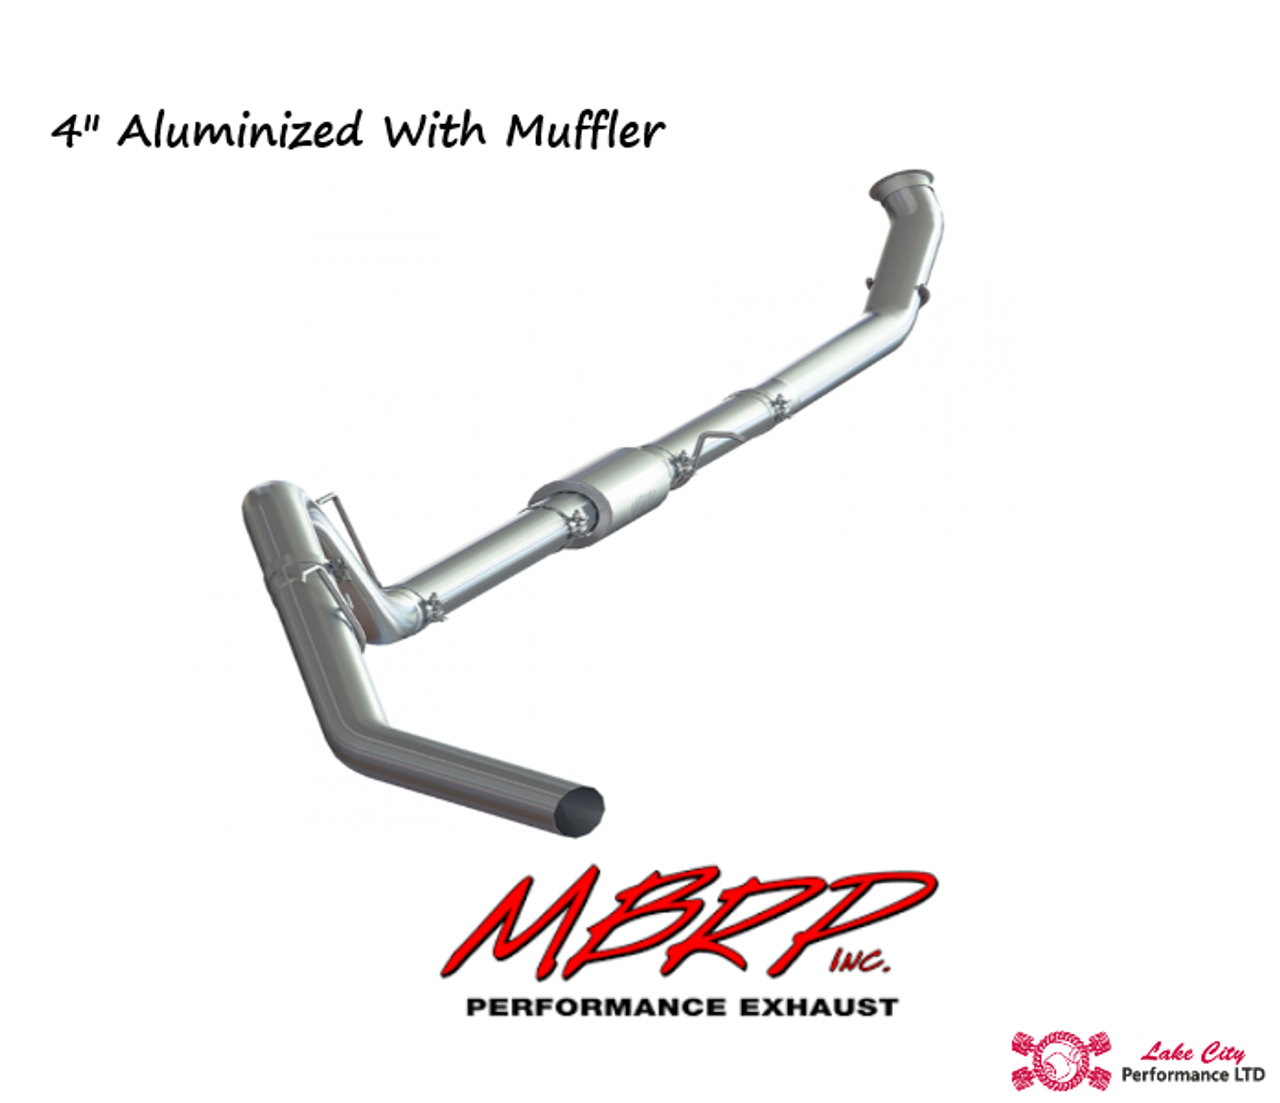 "2013-2018 Dodge Ram2500/3500 6.7L MBRP (P1 Race Parts) 4"" Turbo Back Aluminized Race Exhaust With Muffler (Includes Free Tip) C6145P"